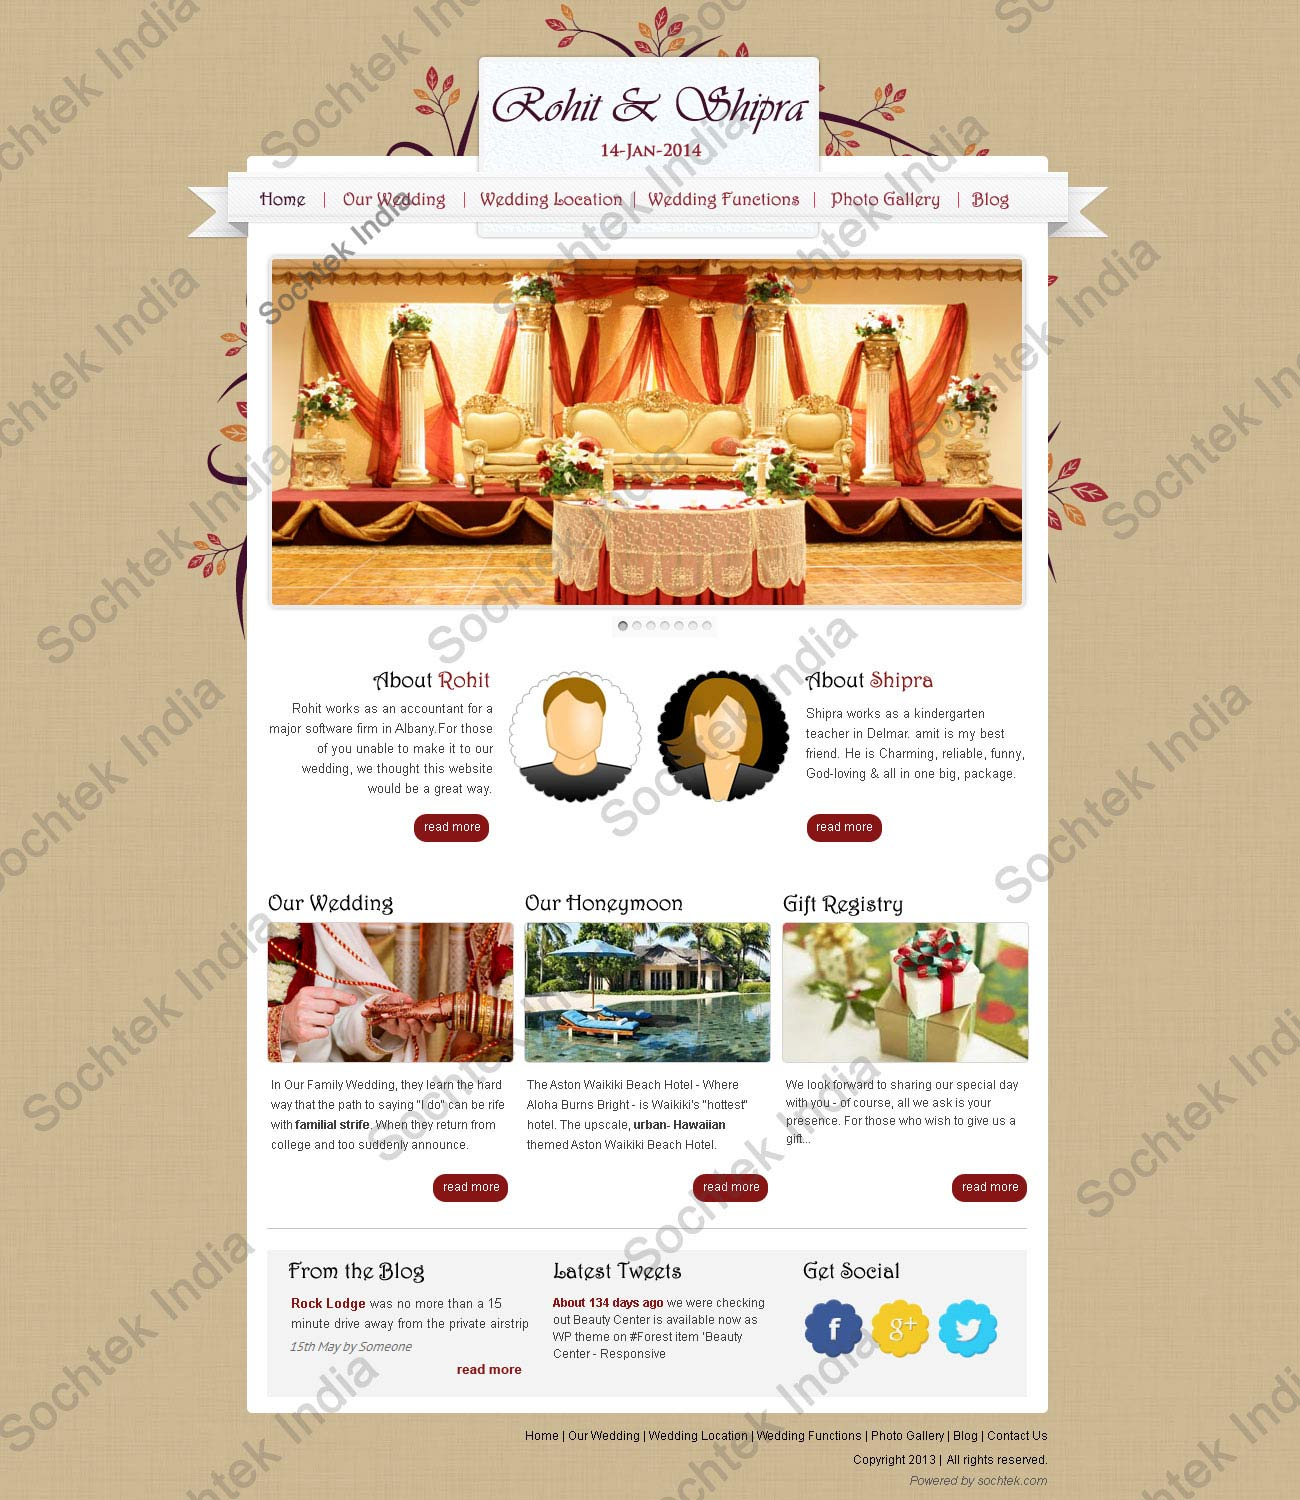 wedding-website-design5